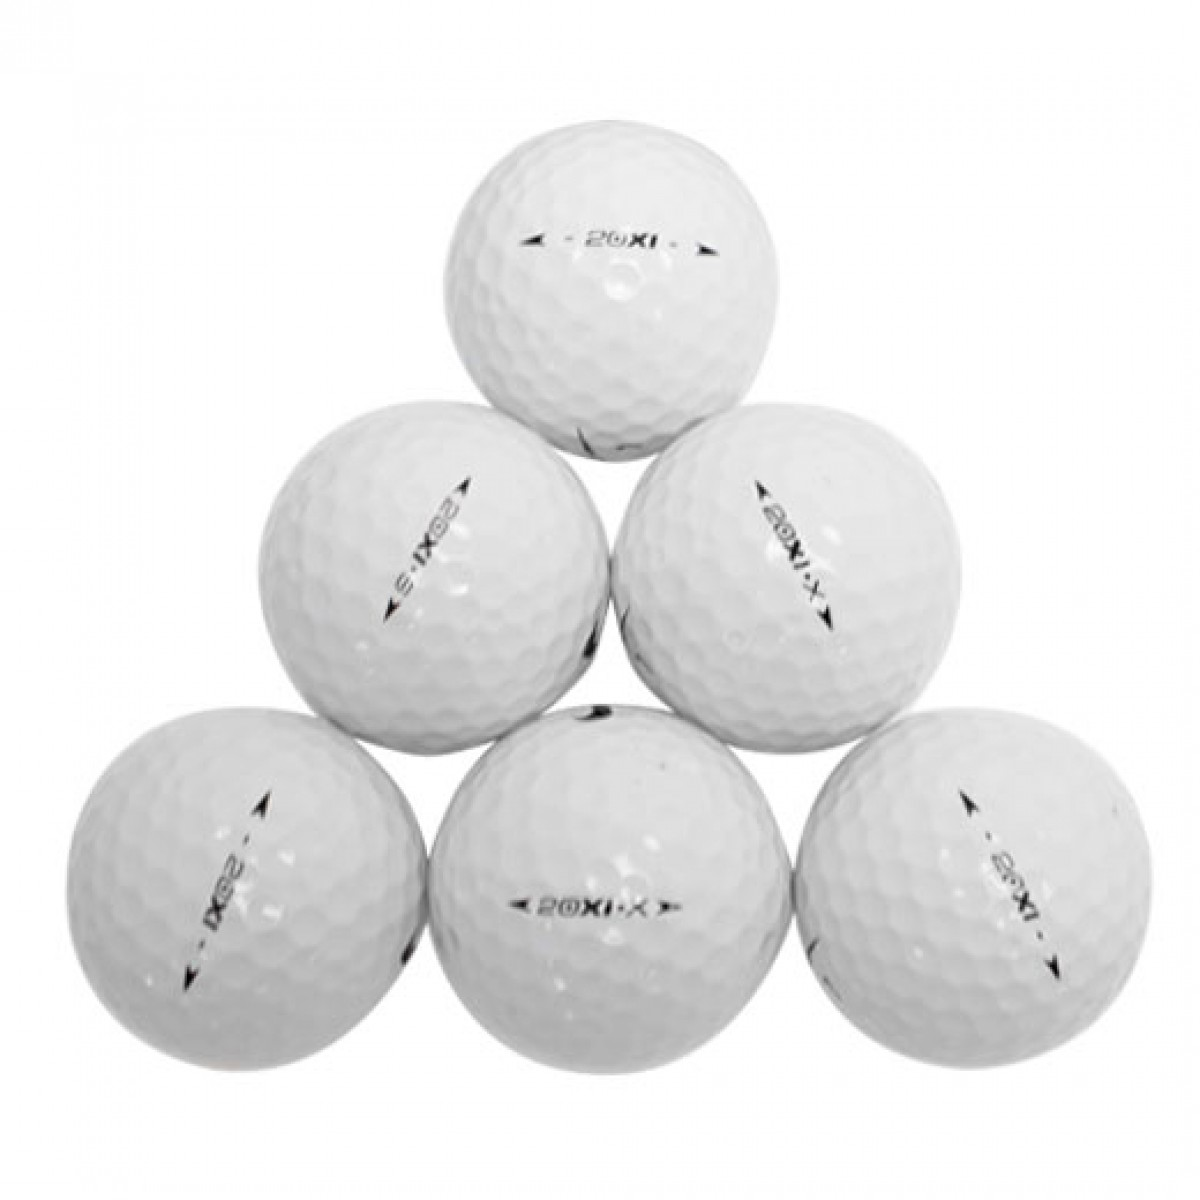 fa5aec4113a54 Nike 20XI Mix used golf balls